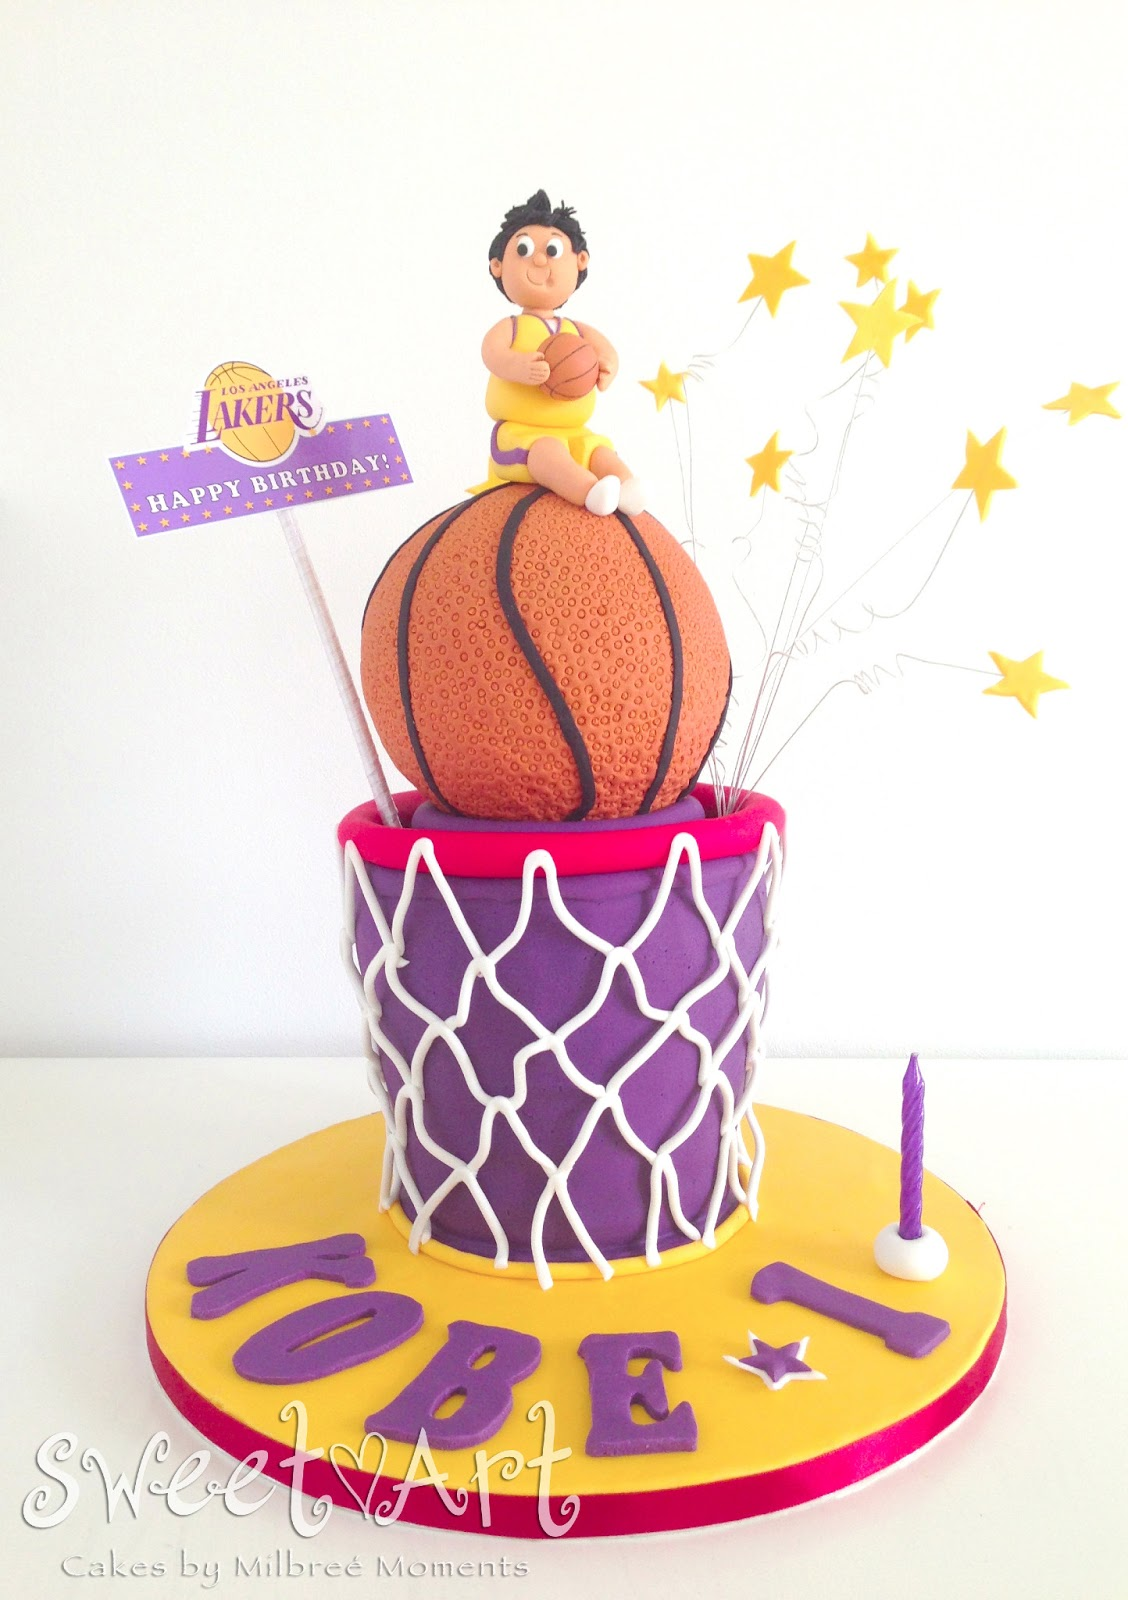 Sweet Art Cakes By Milbre Moments Kobes La Lakers Basketball